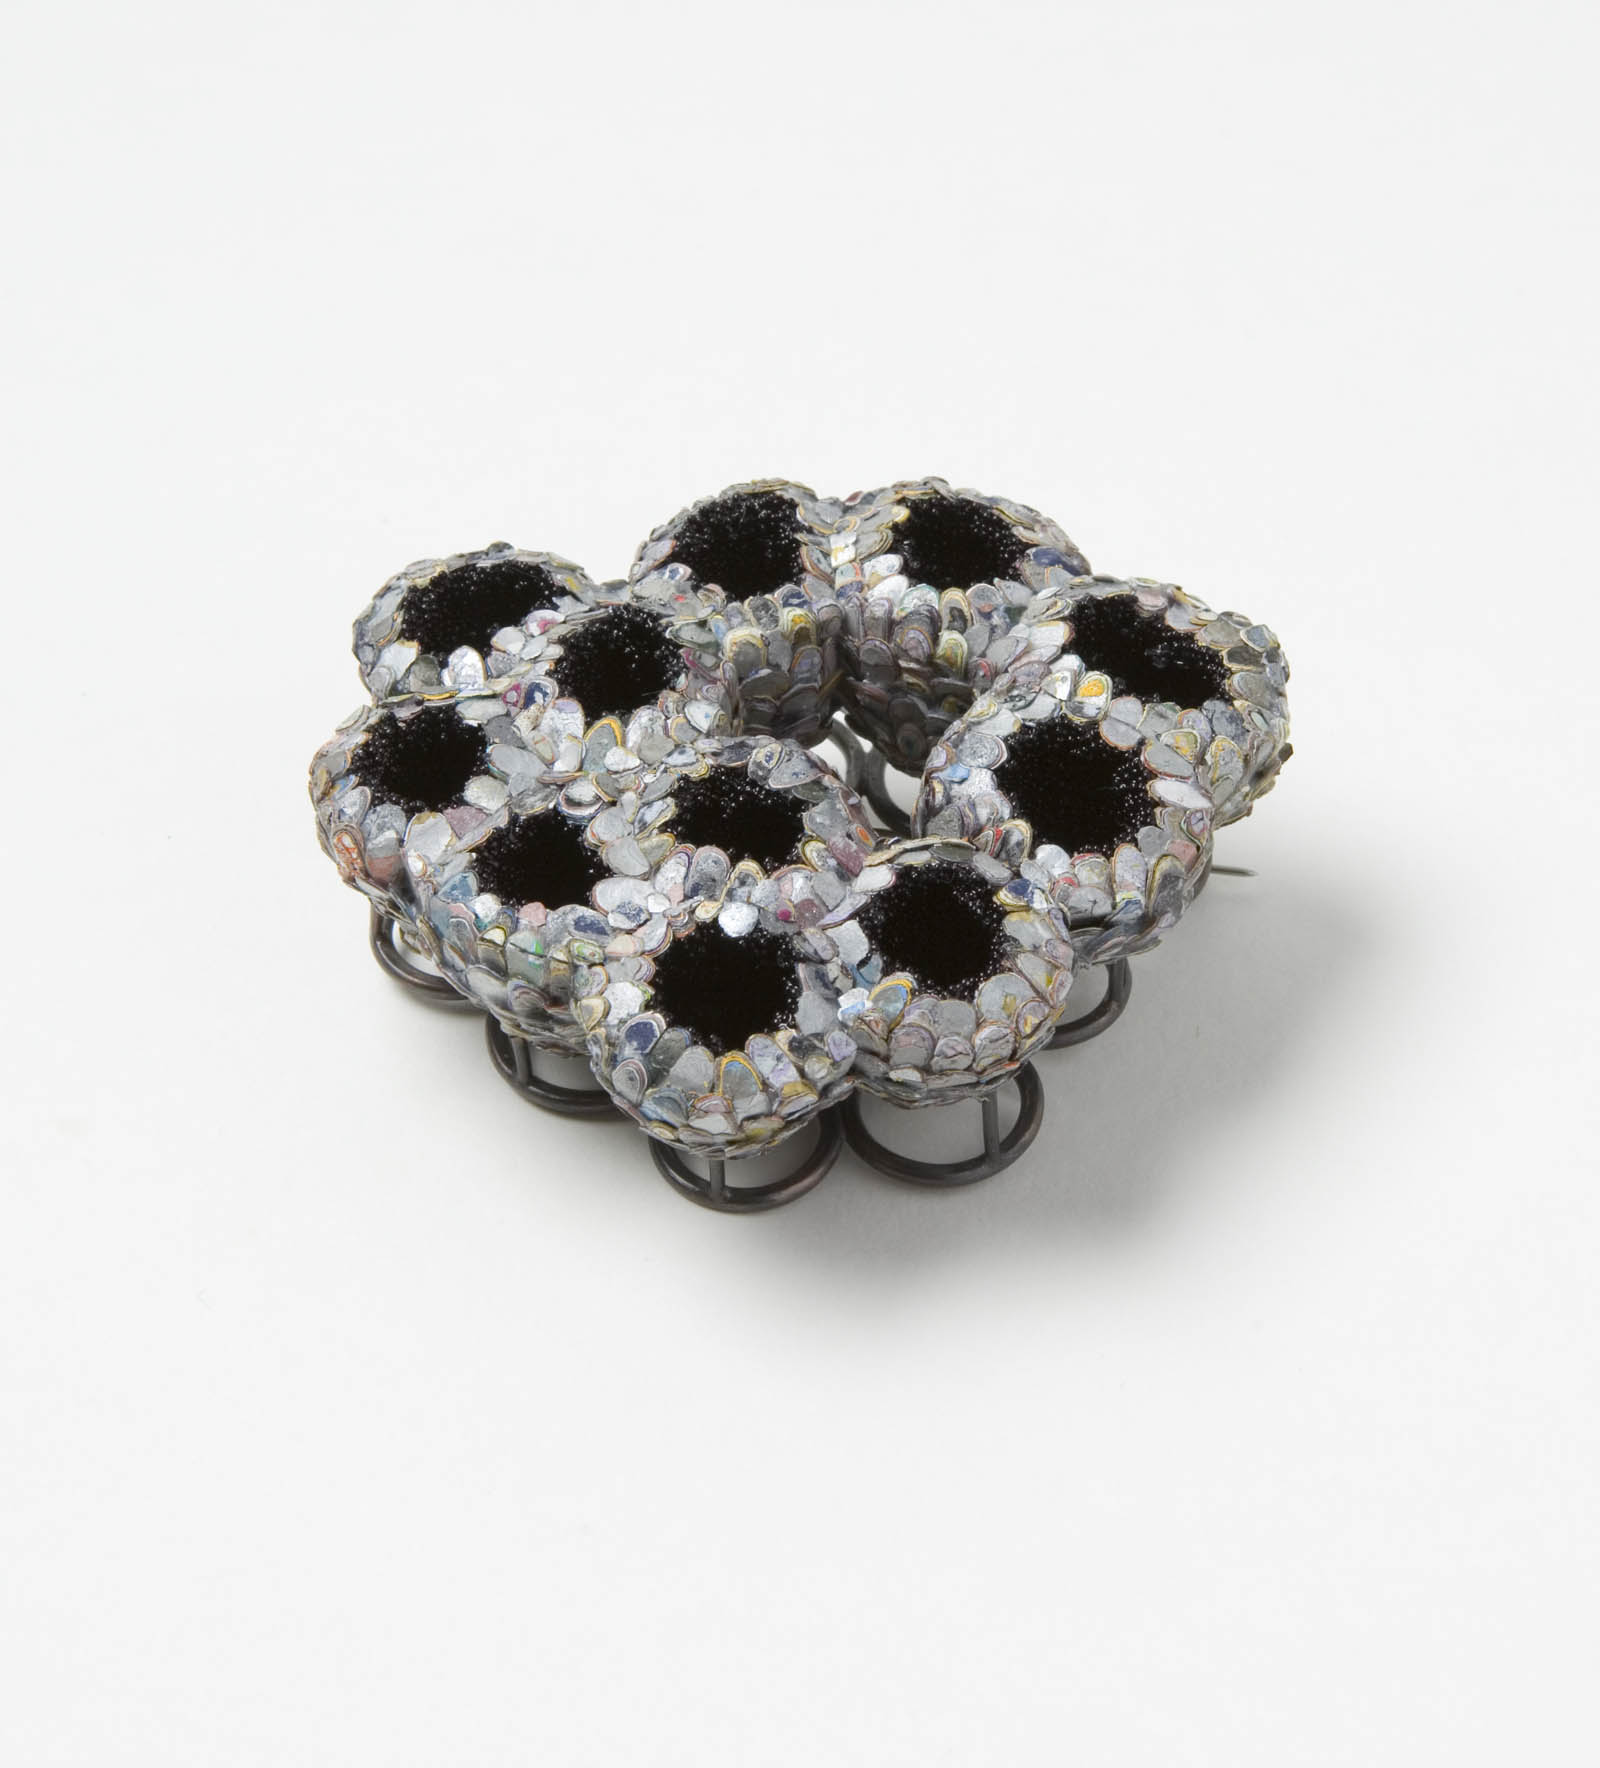 """""""The Secret Keepers (Silver)"""" I Brooch, 2016 I Seed pods, graffiti, glass, silver, stainless steel I Photo: Mirei Takeuchi"""